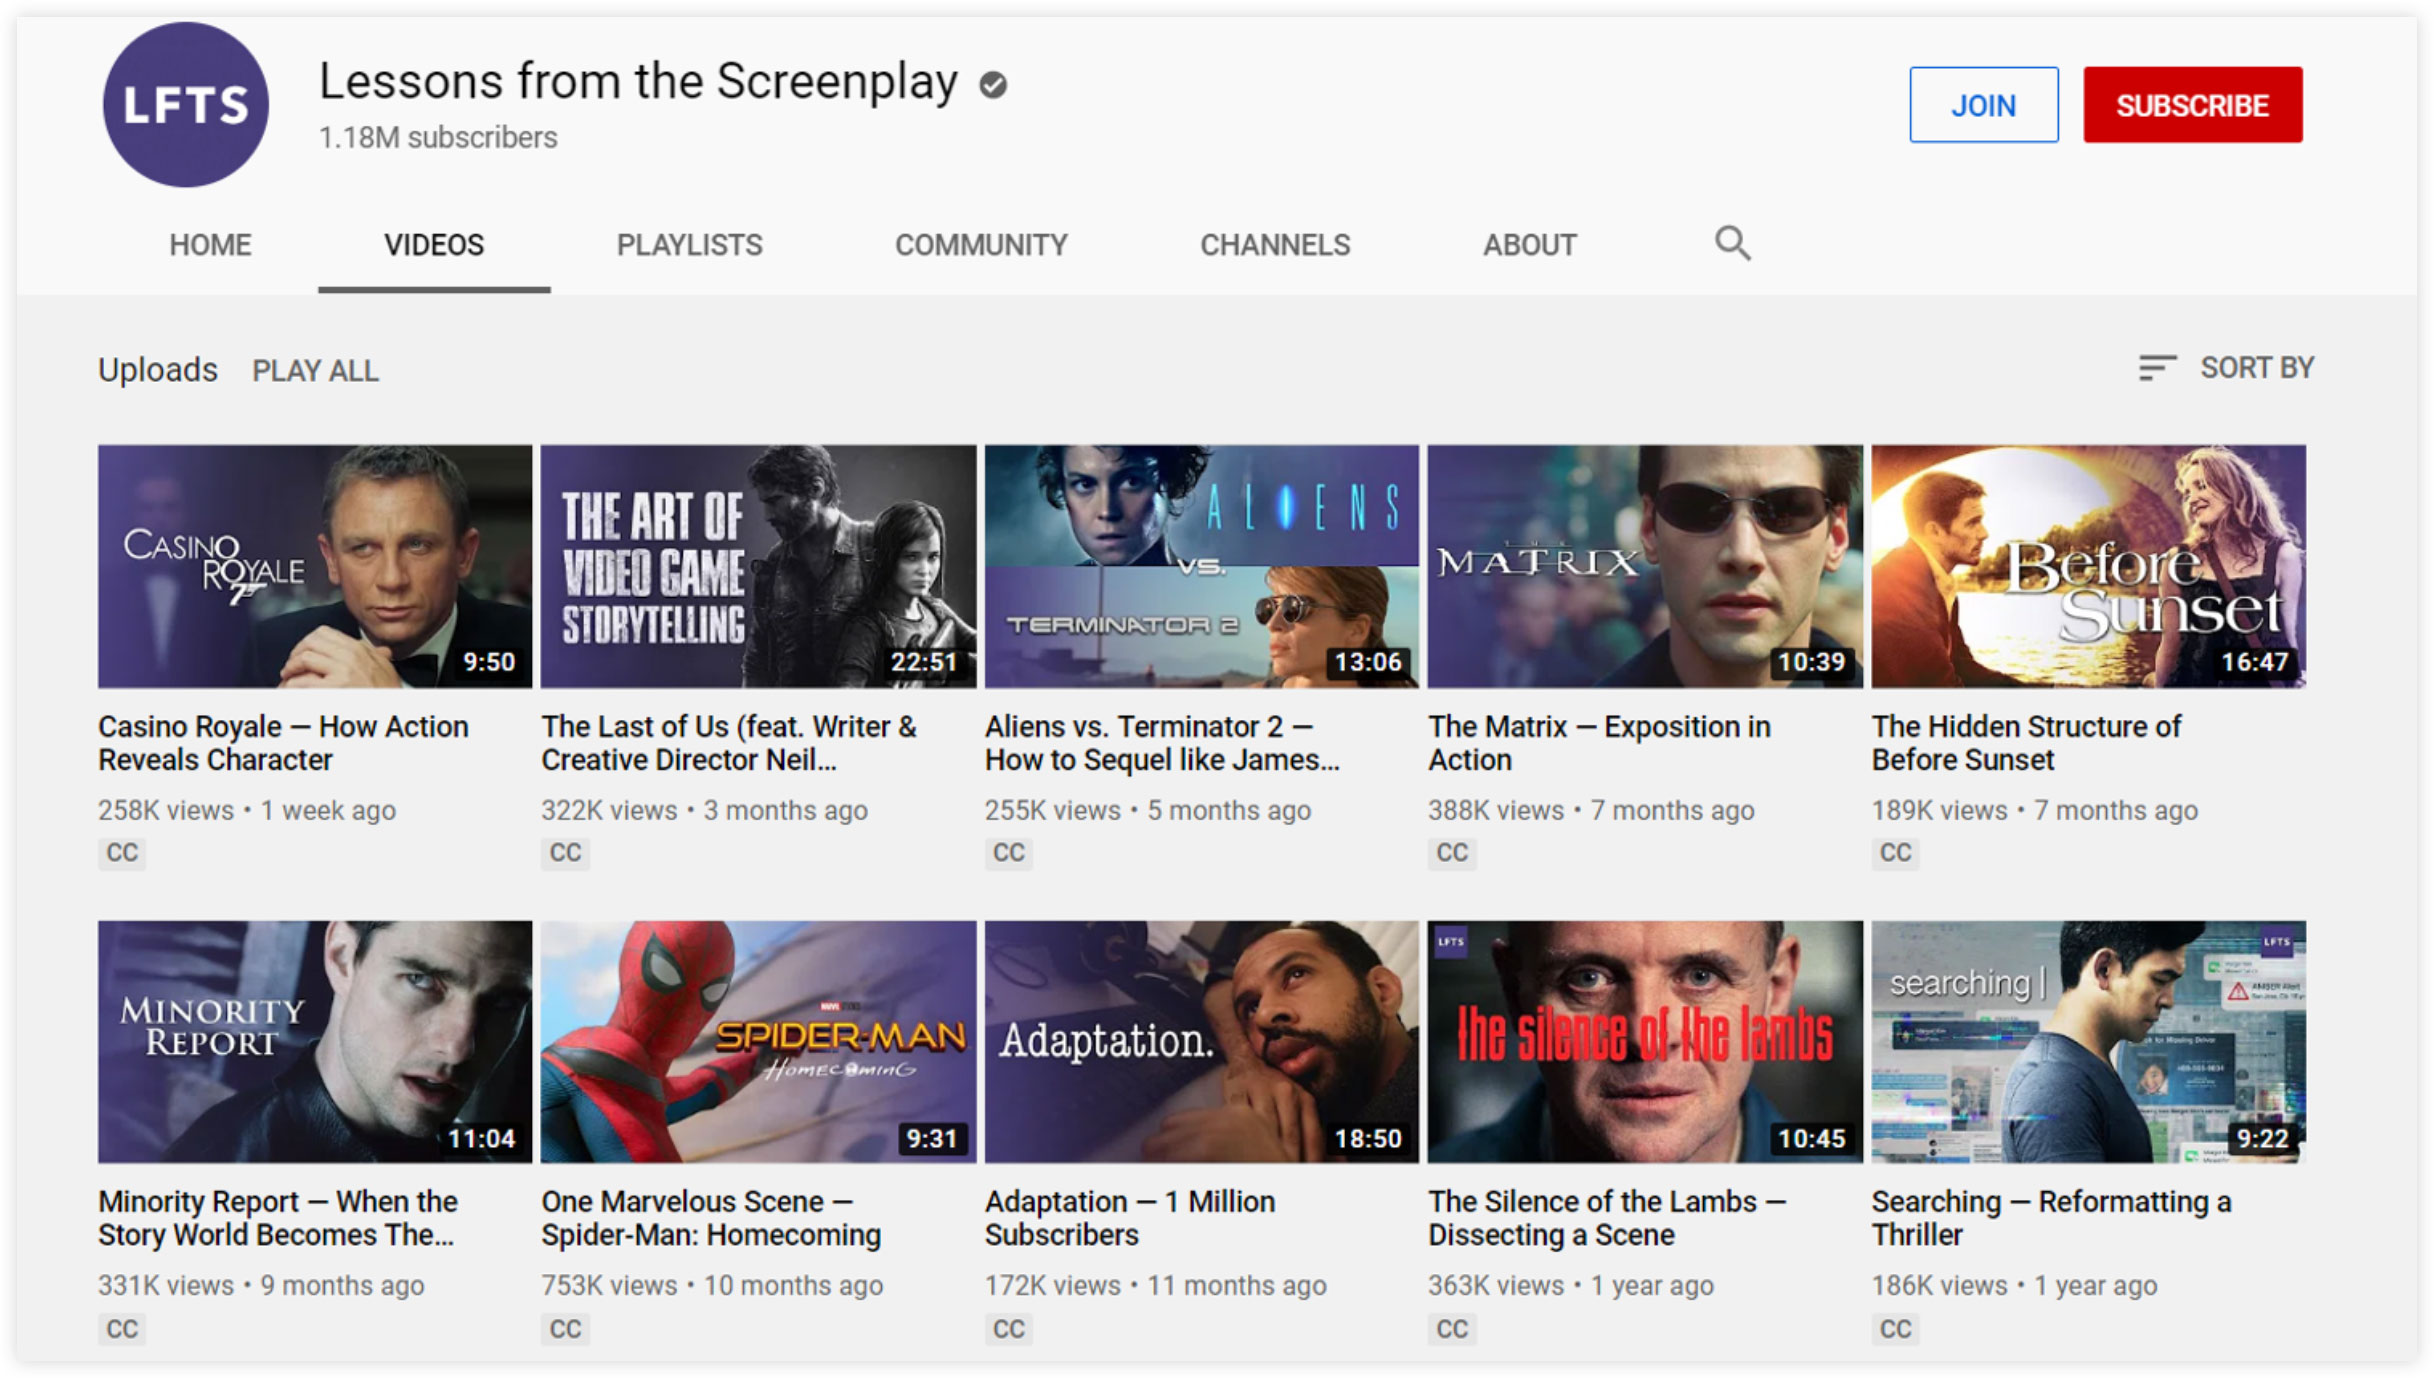 Lessons from the Screenplay YouTube Channel